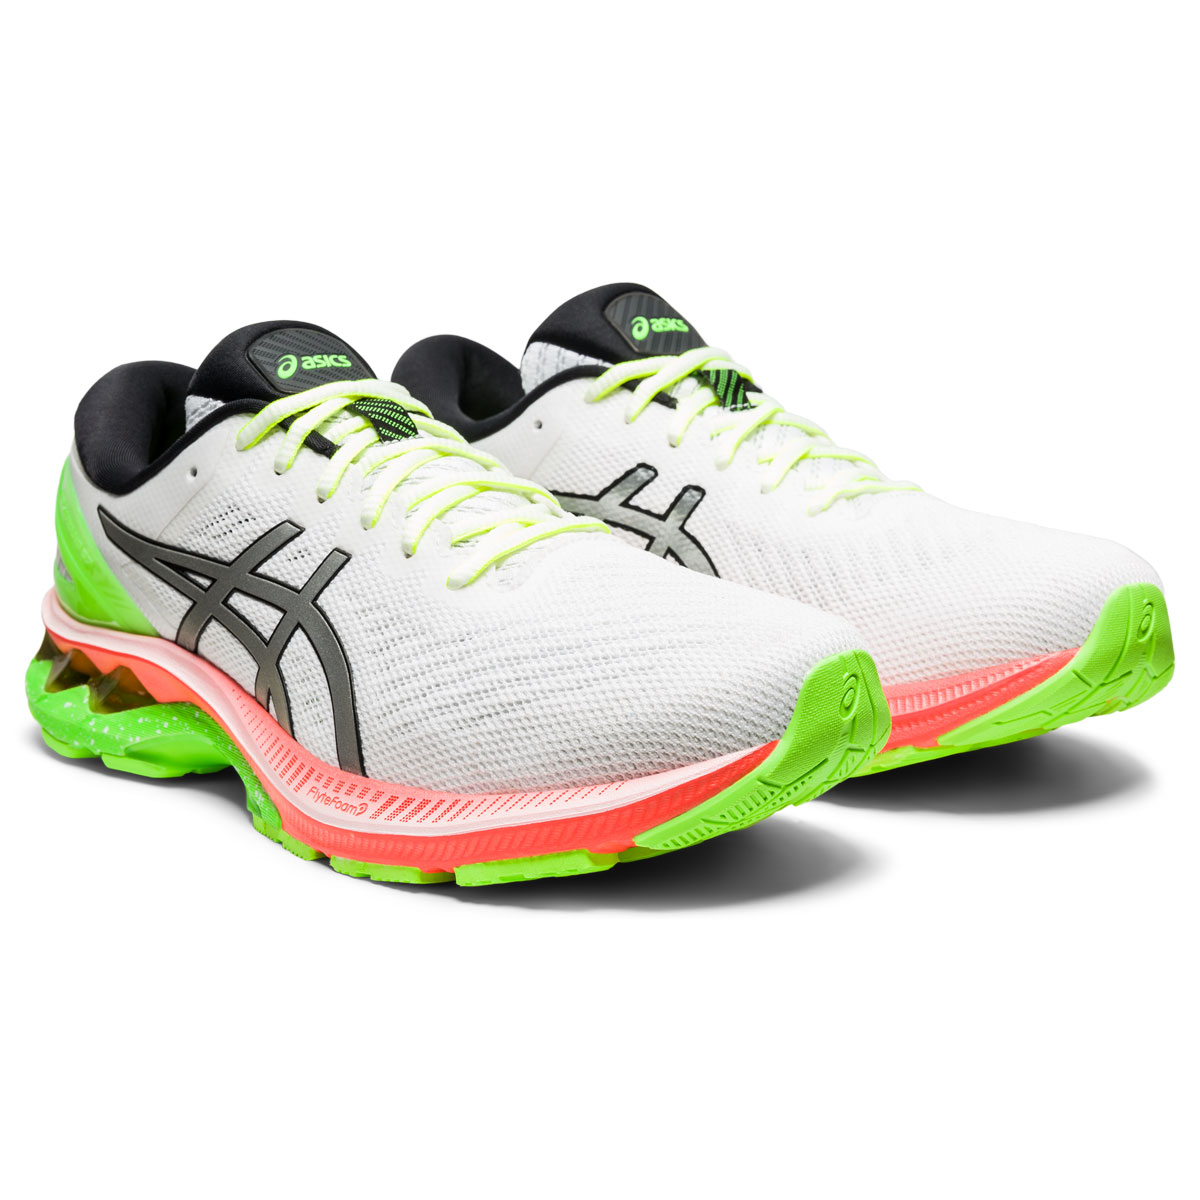 Men's Asics GEL-Kayano 27 Lite-Show Running Shoe - Color: White/Pure Silv (Regular Width) - Size: 6, White/Pure Silver, large, image 3